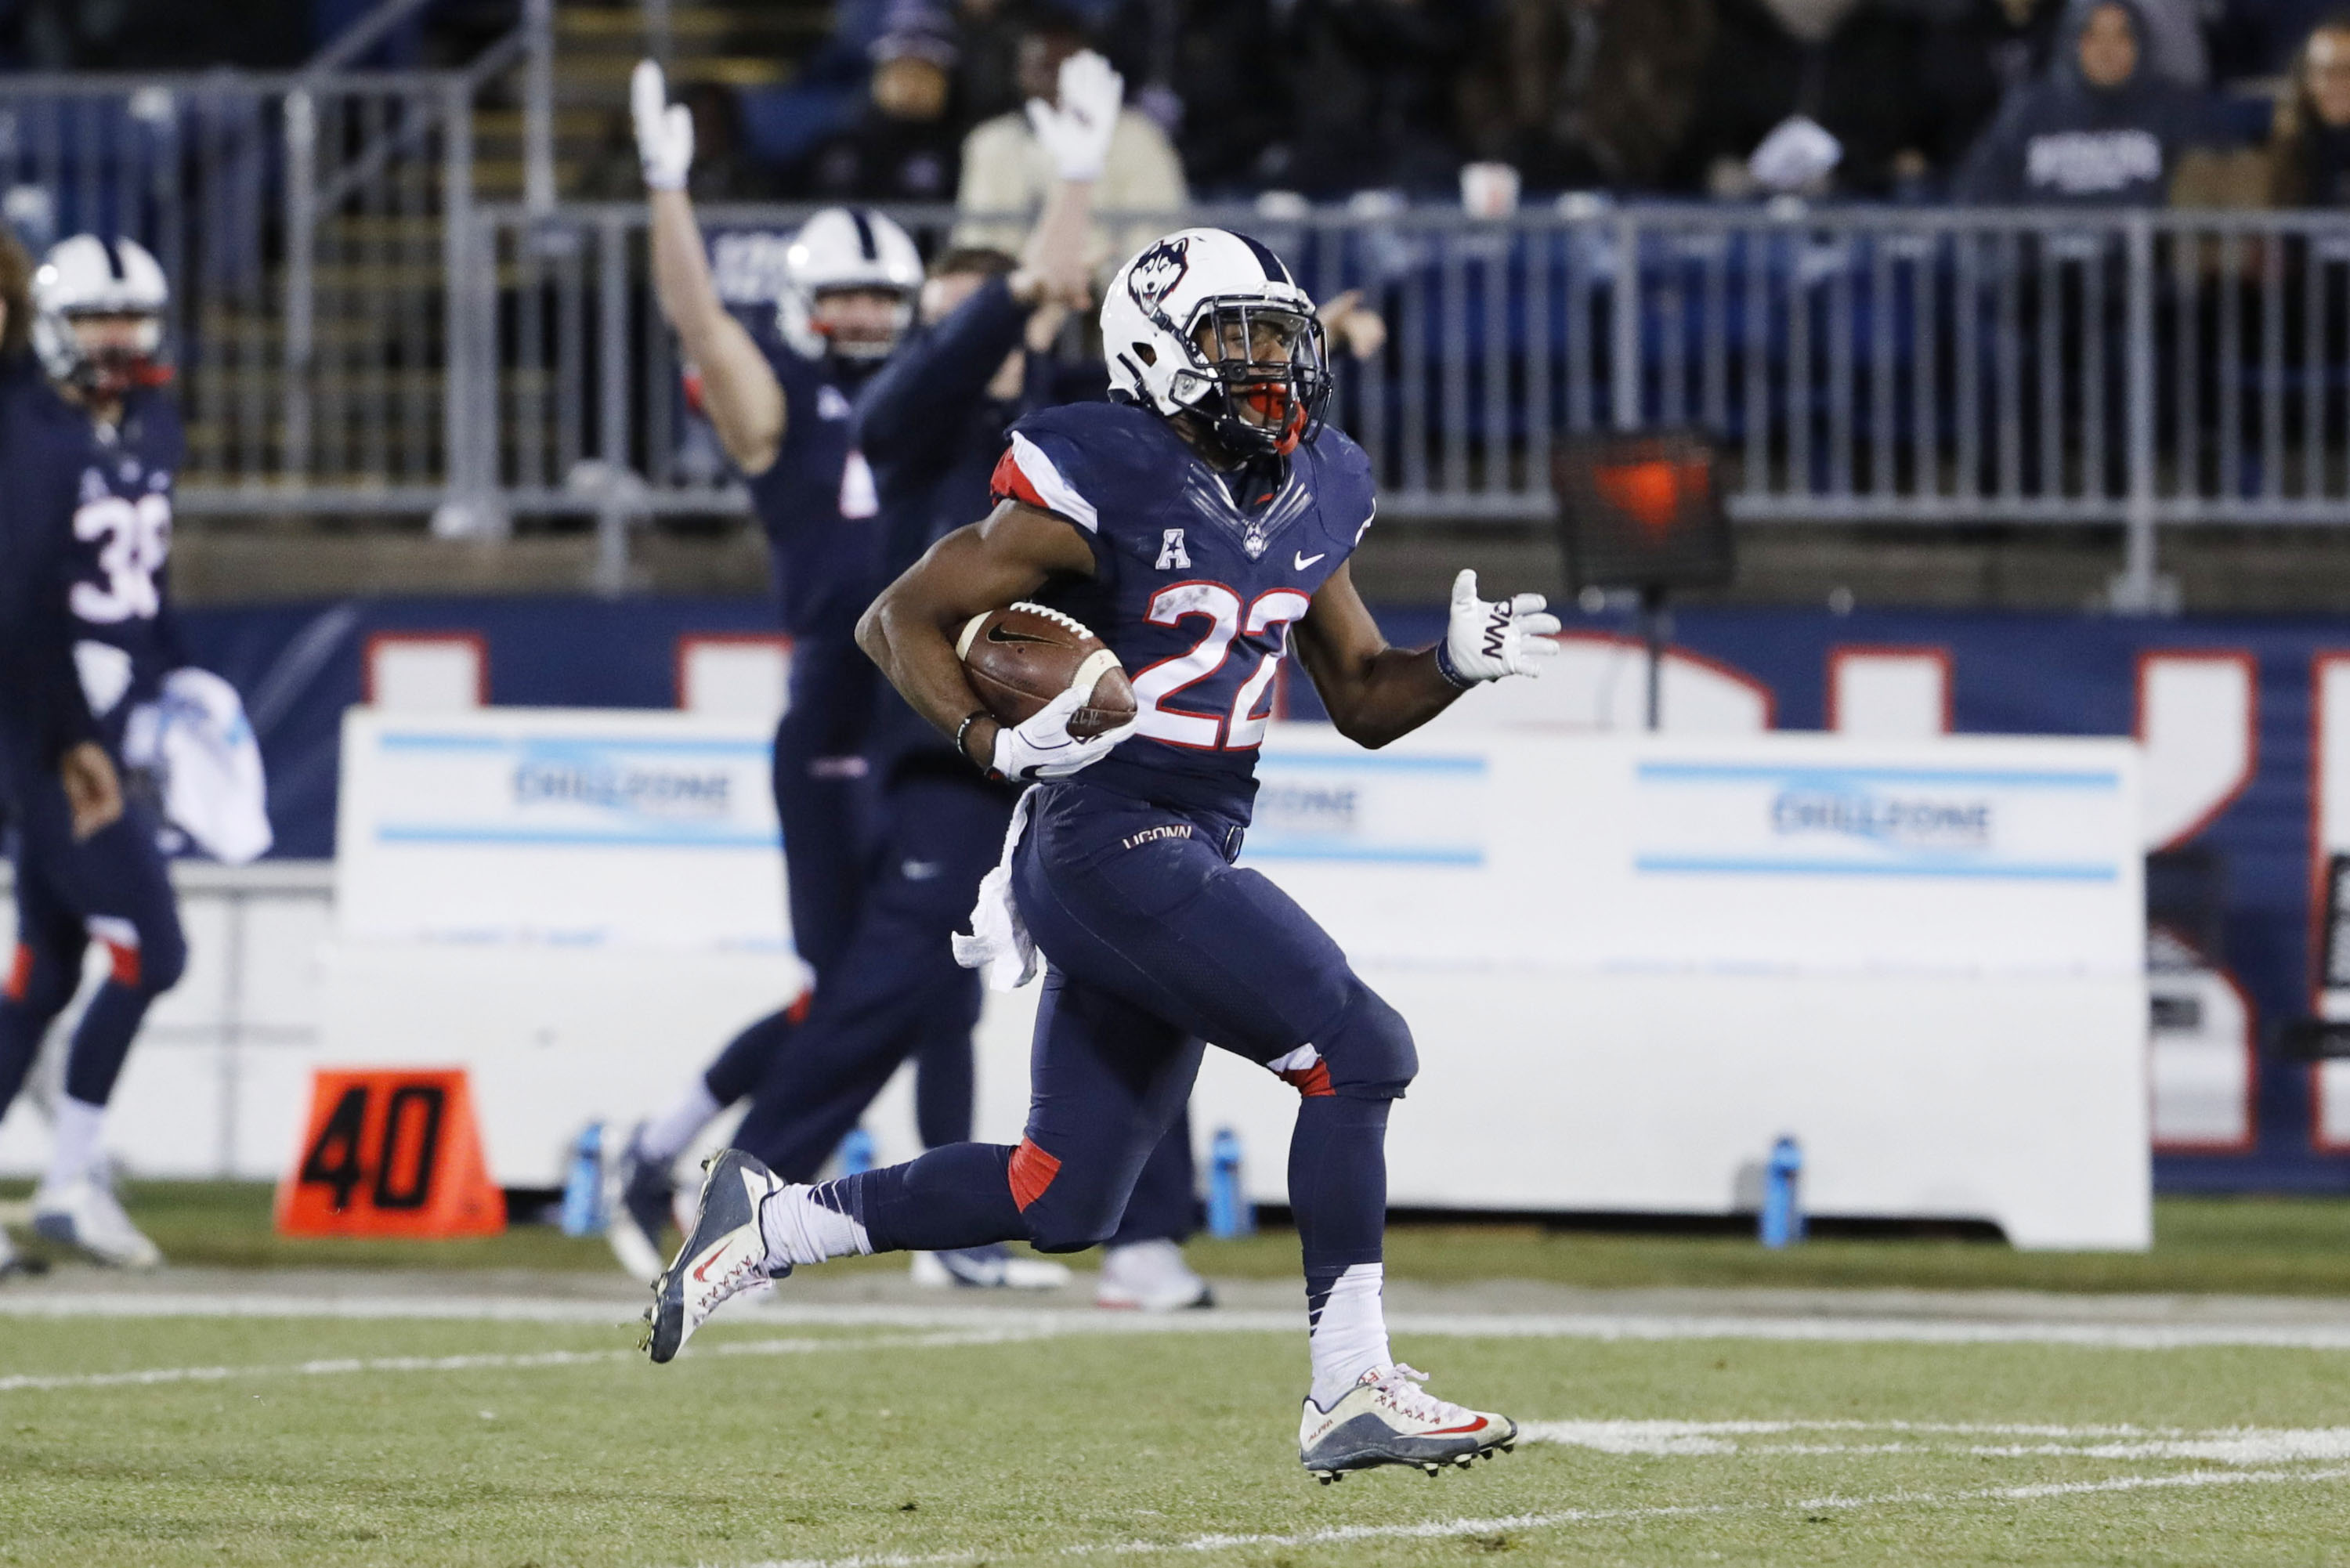 Image Result For Aac Post Spring Football Rankings